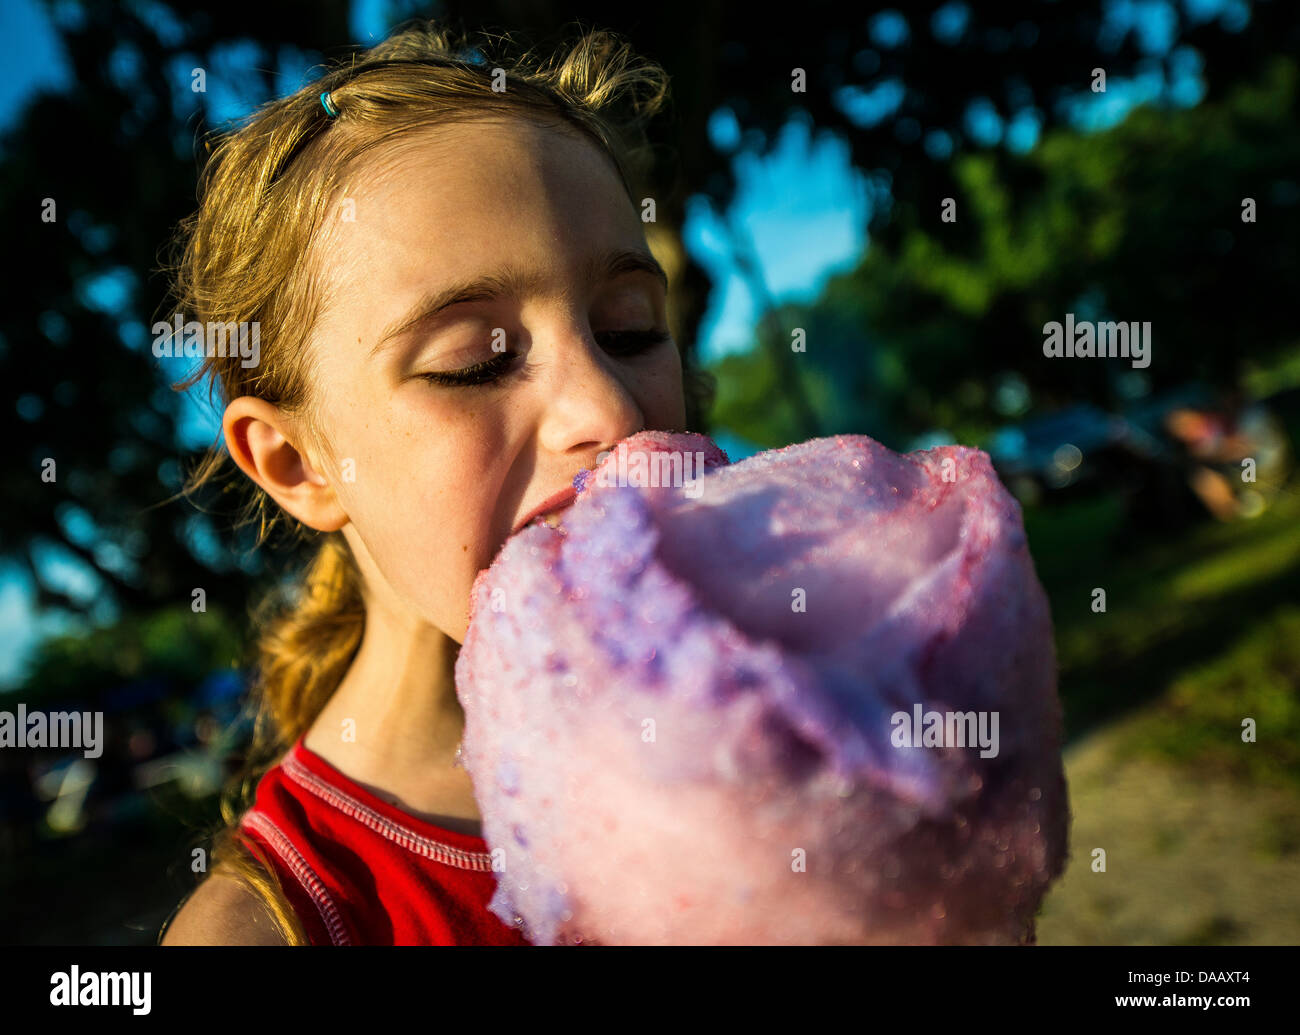 A military dependent eats cotton candy June 28 during the 2013 Freedom Fest at Marrington Plantation at Joint Base - Stock Image